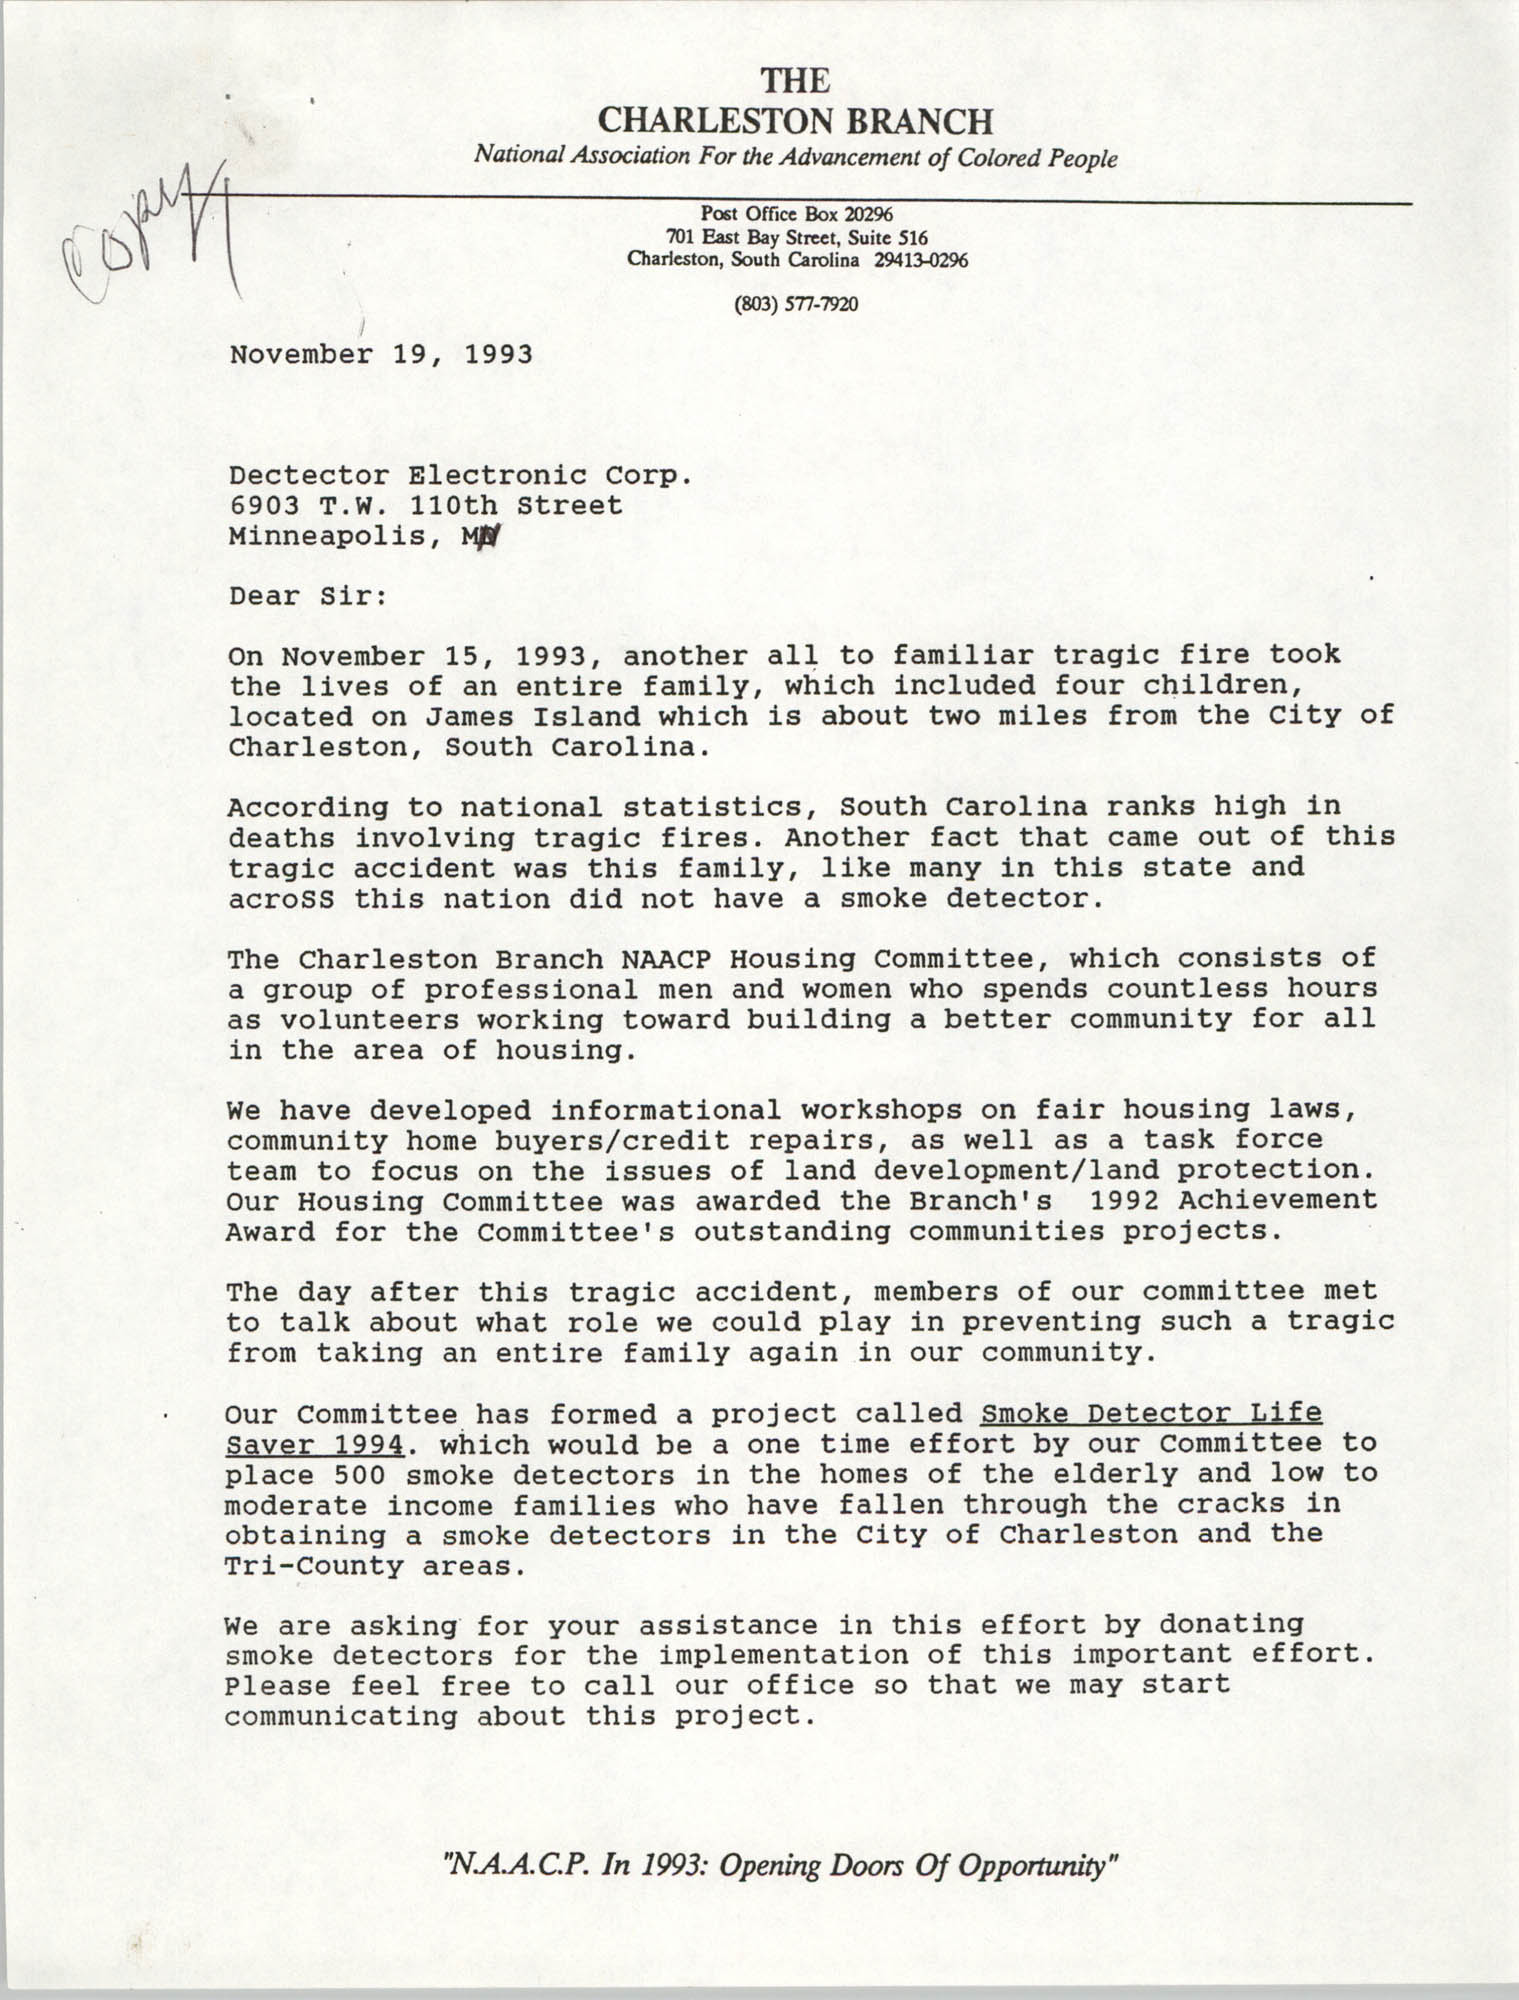 Letter from Rodney Williams to Detector Electronic Corp., November 19, 1993